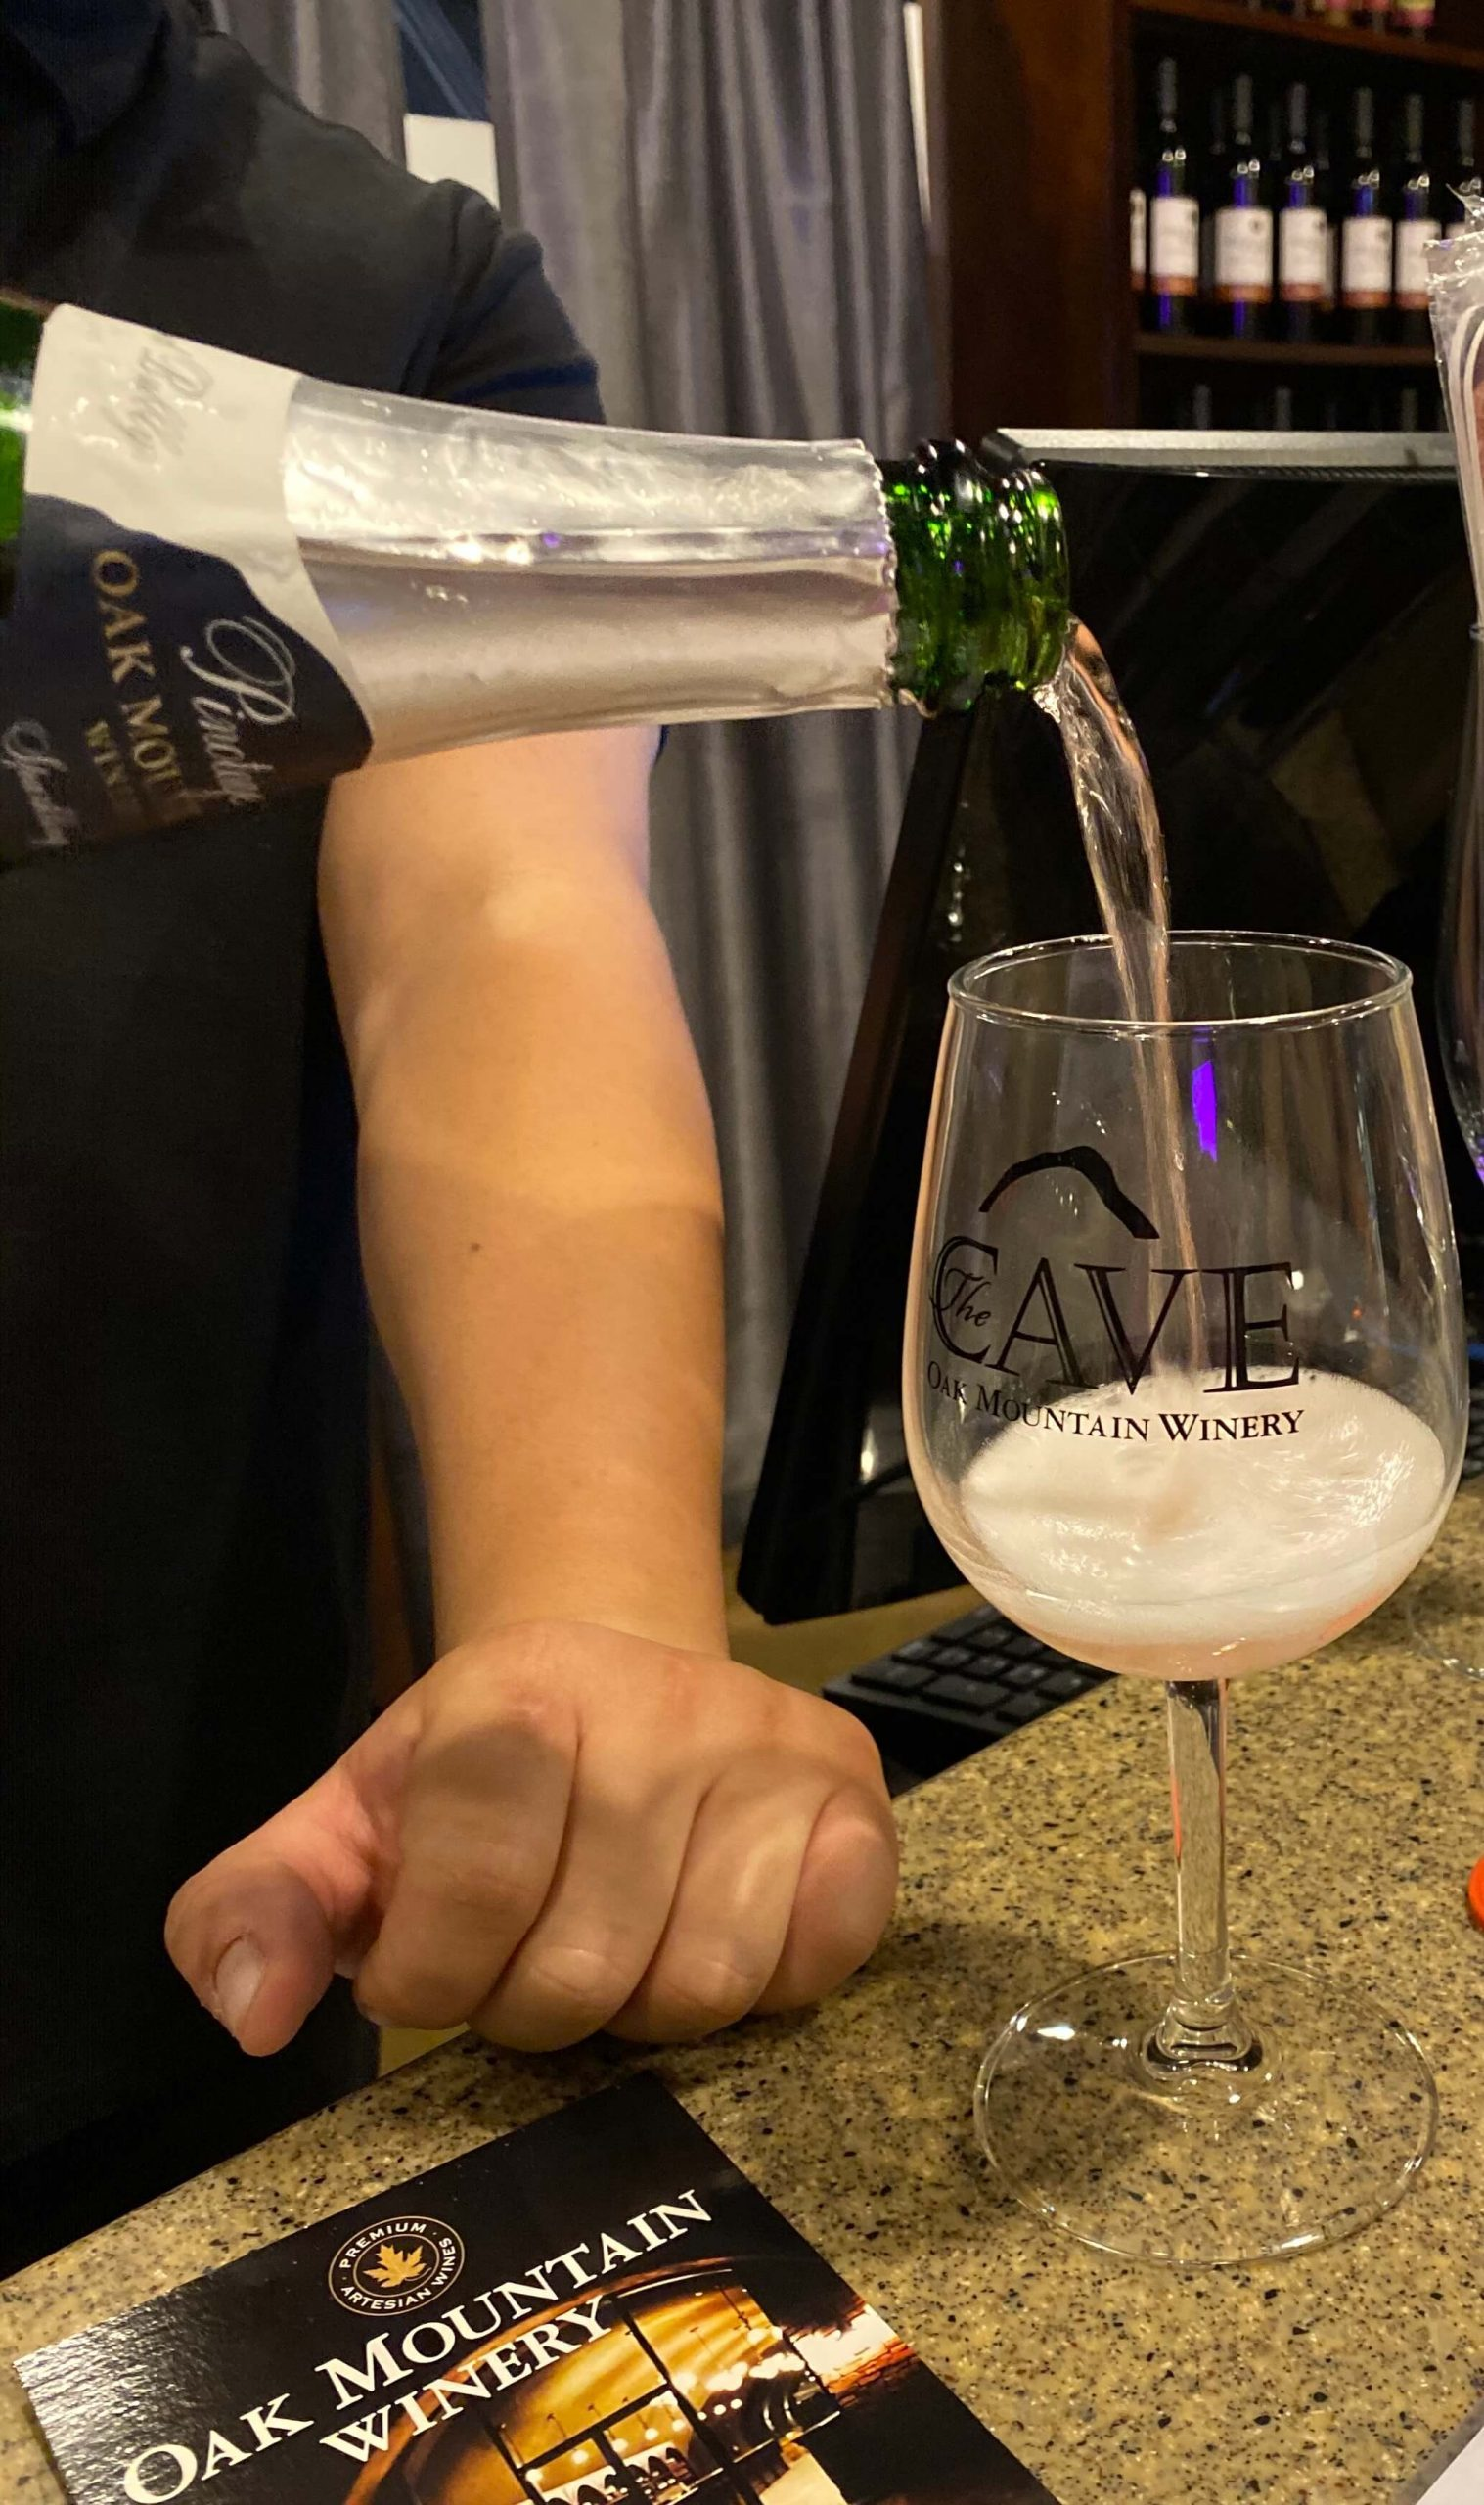 Oak Mountain Winery: 5 sparkling wines and a hidden cave!